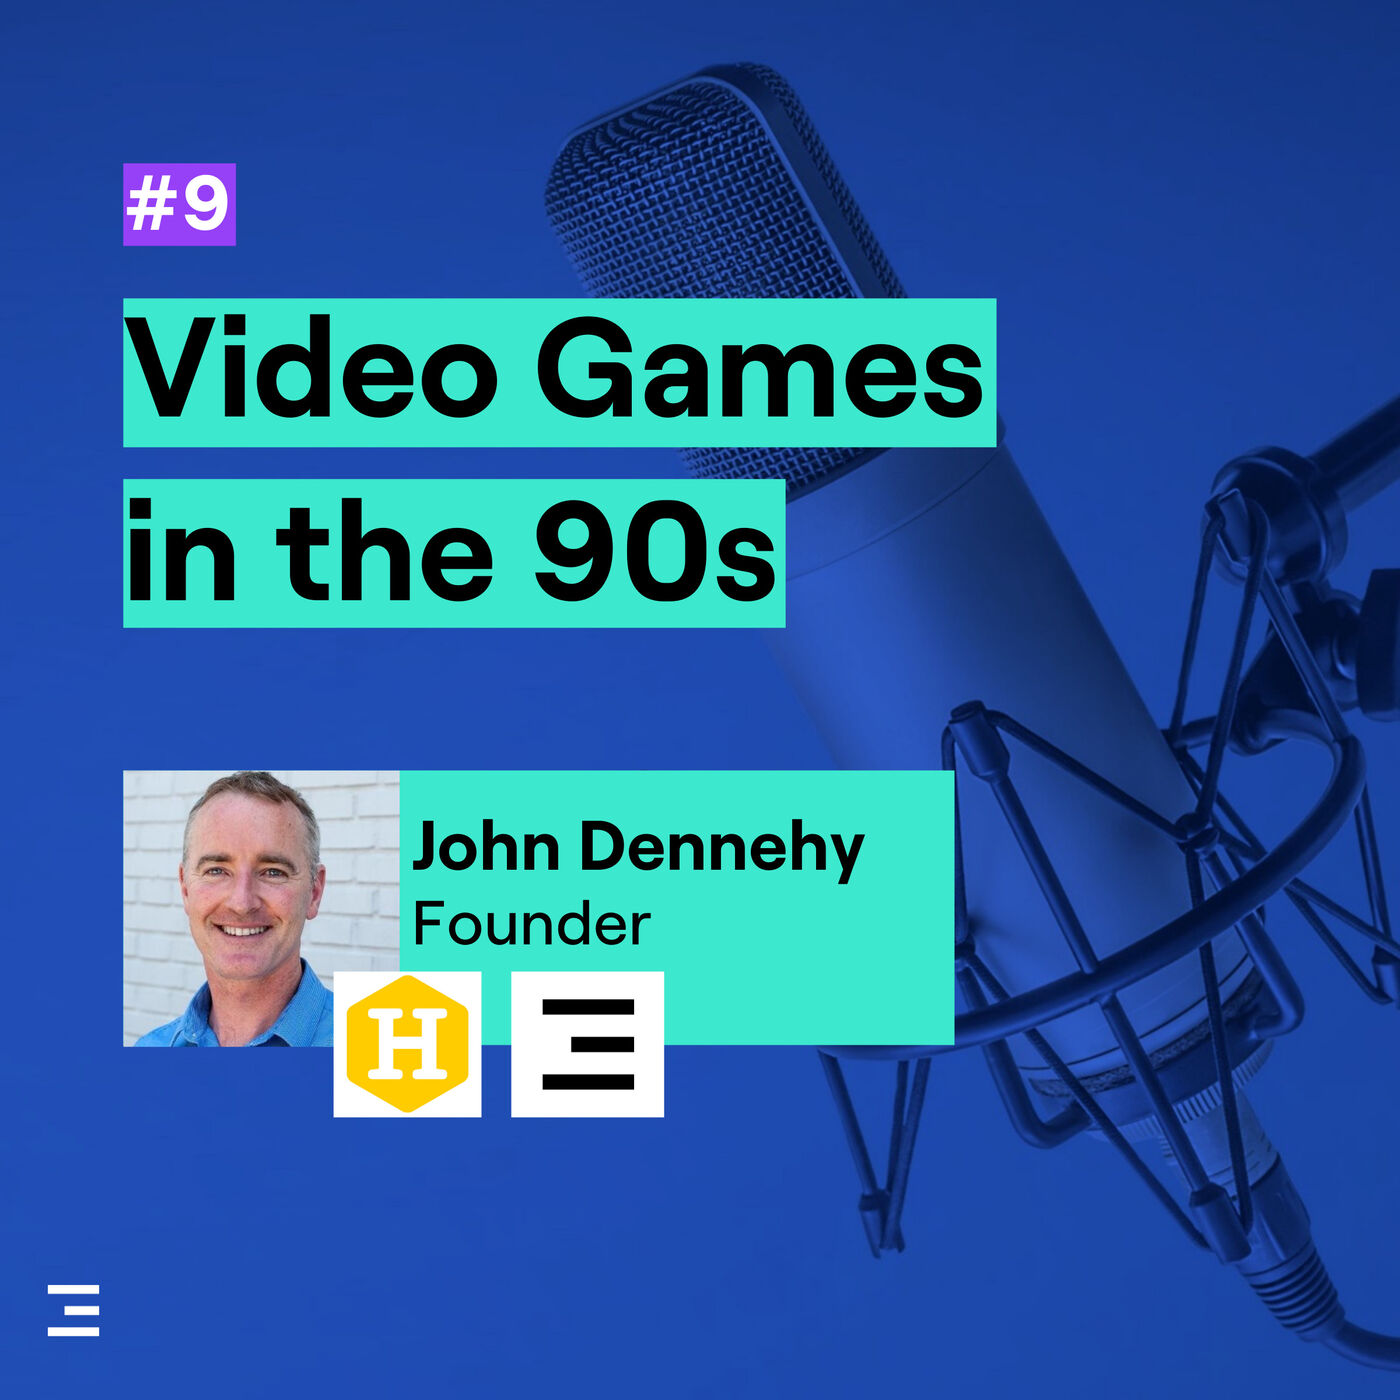 9. Video Games in the 90s